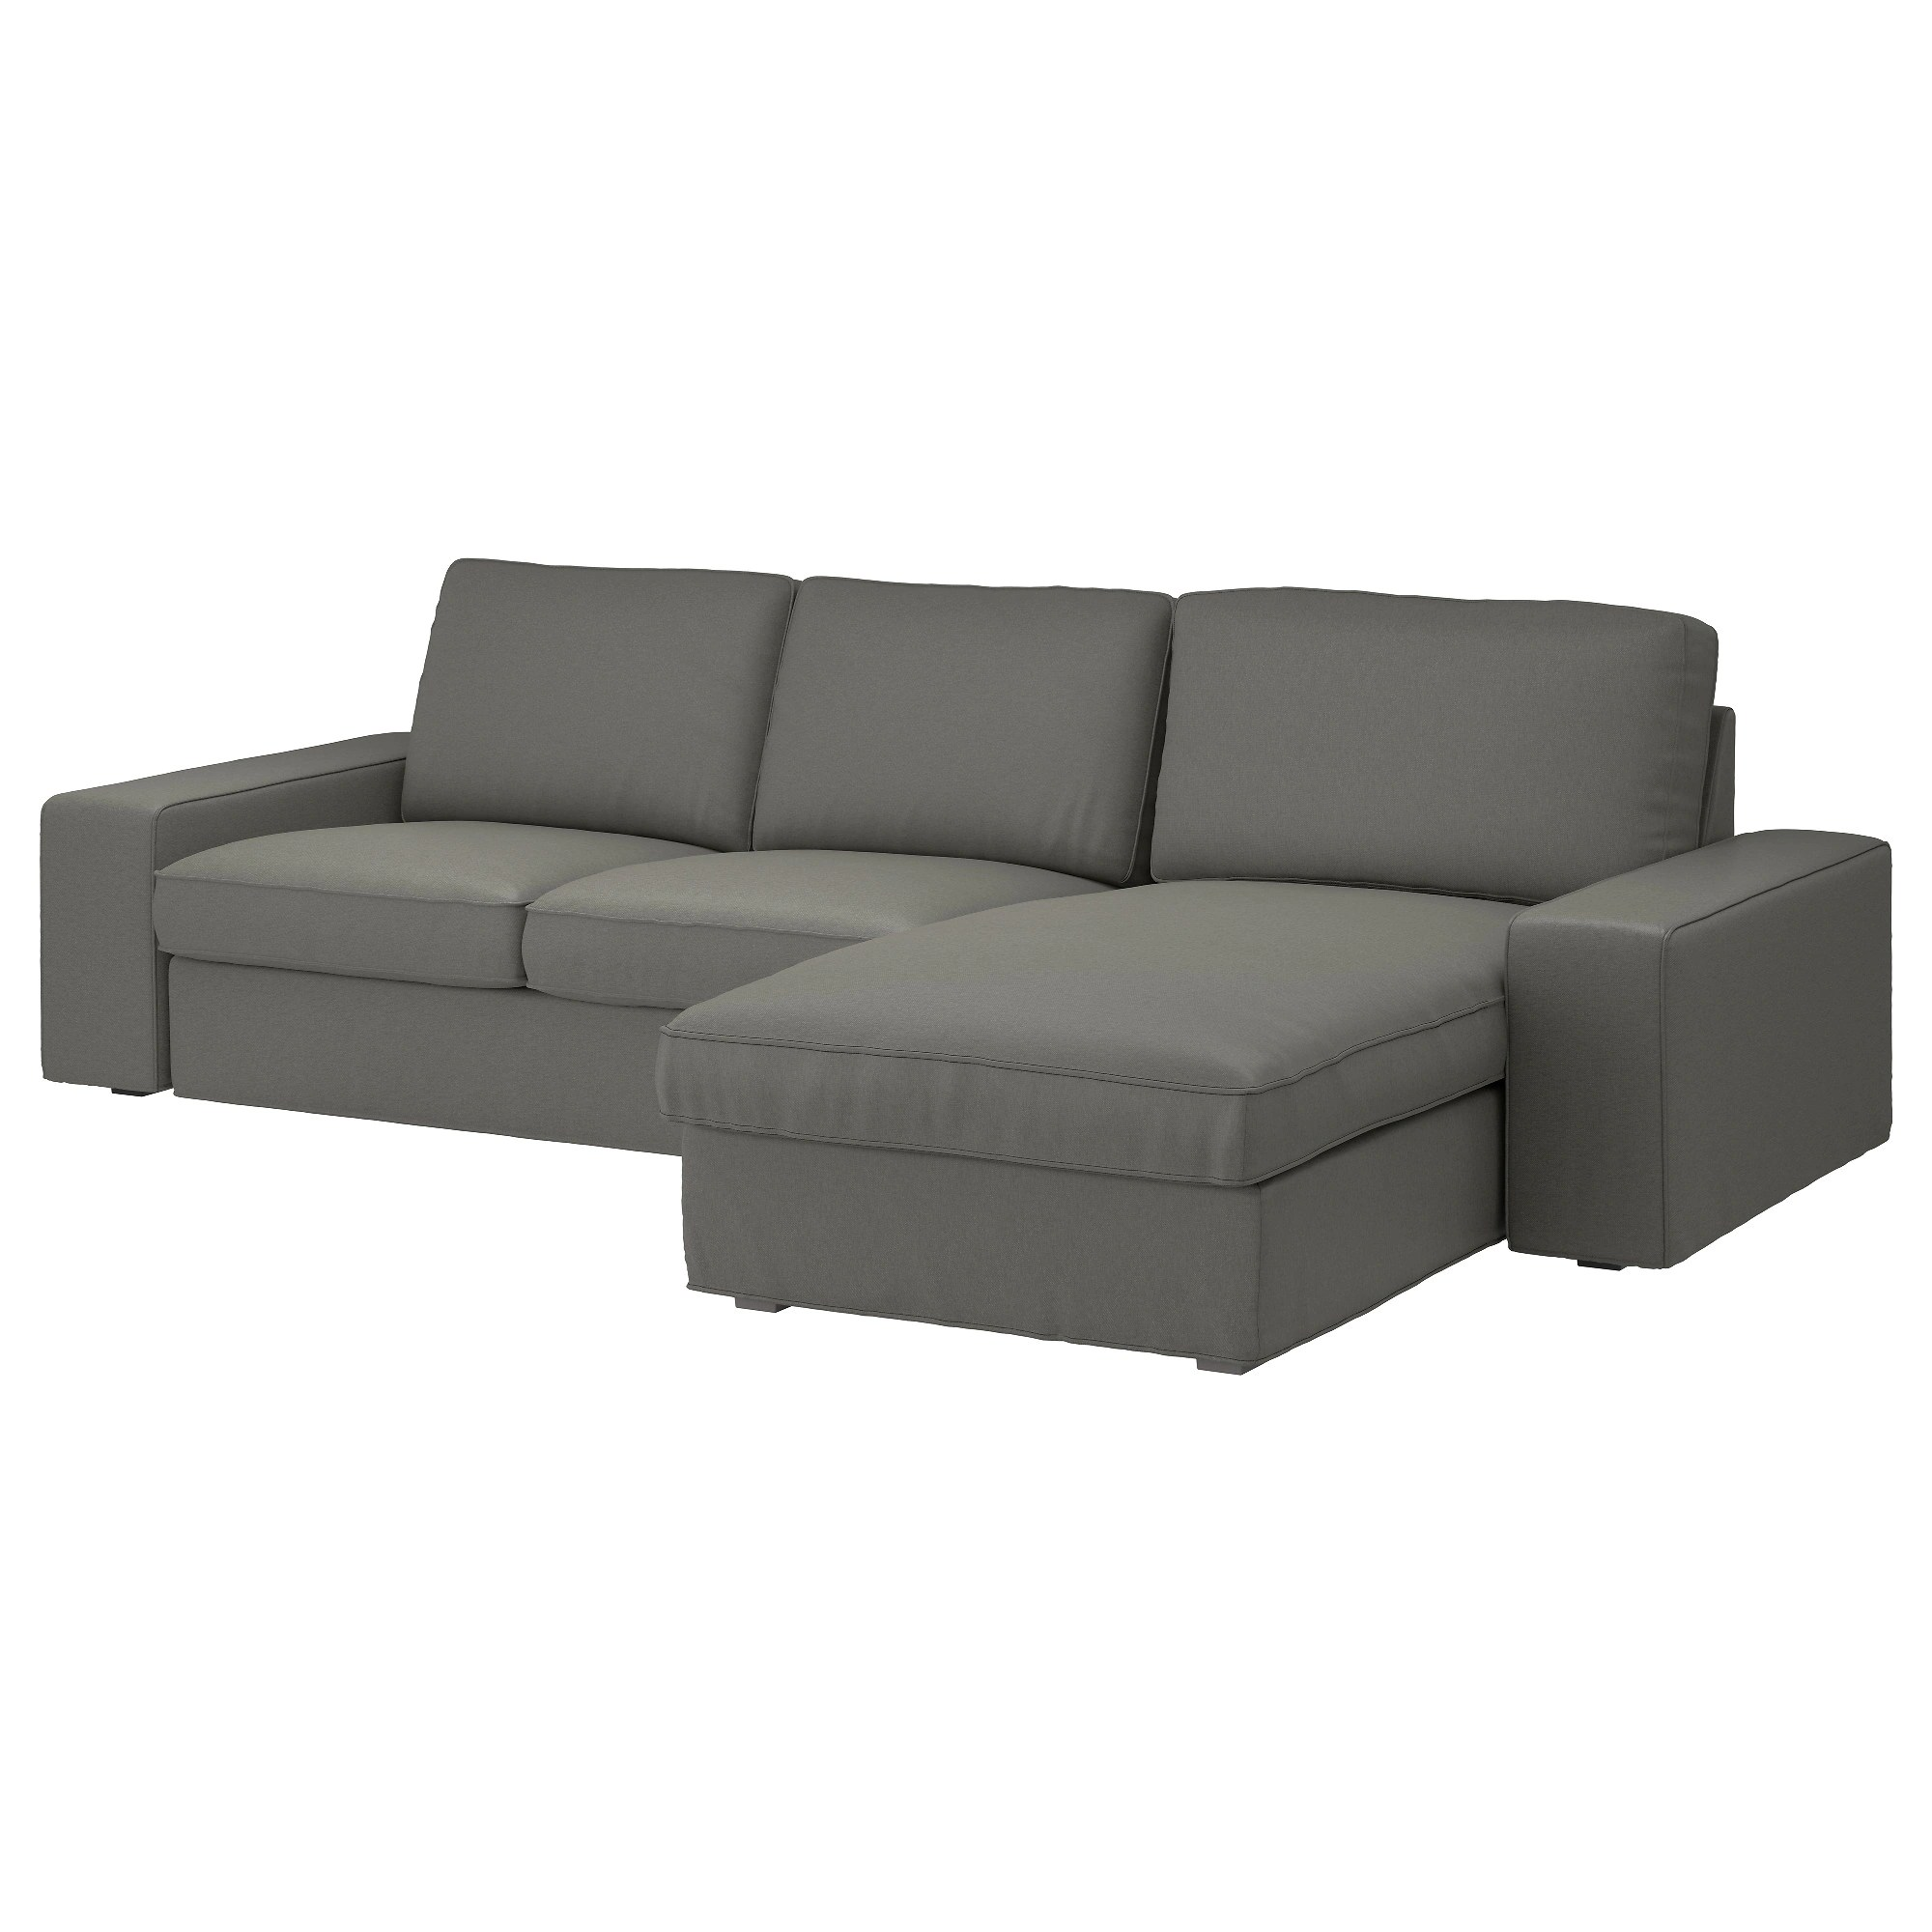 Sofa Ikea Chaise Kivik Sofa With Chaise Orrsta Red